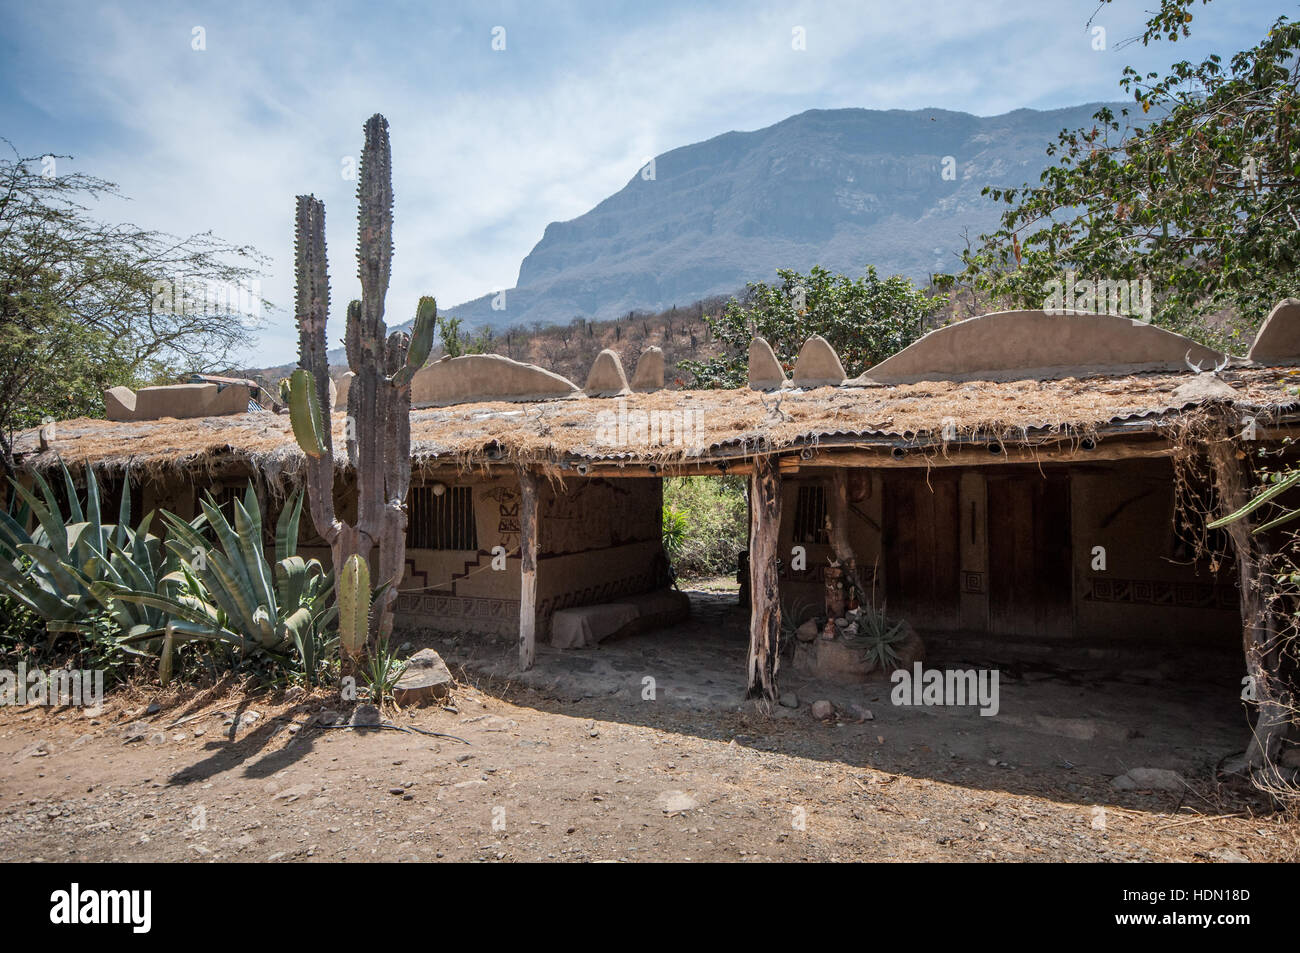 Entrance to the Chaparri Reserve (Private Area of Conservation) in Lambayeque in northern Peru Stock Photo